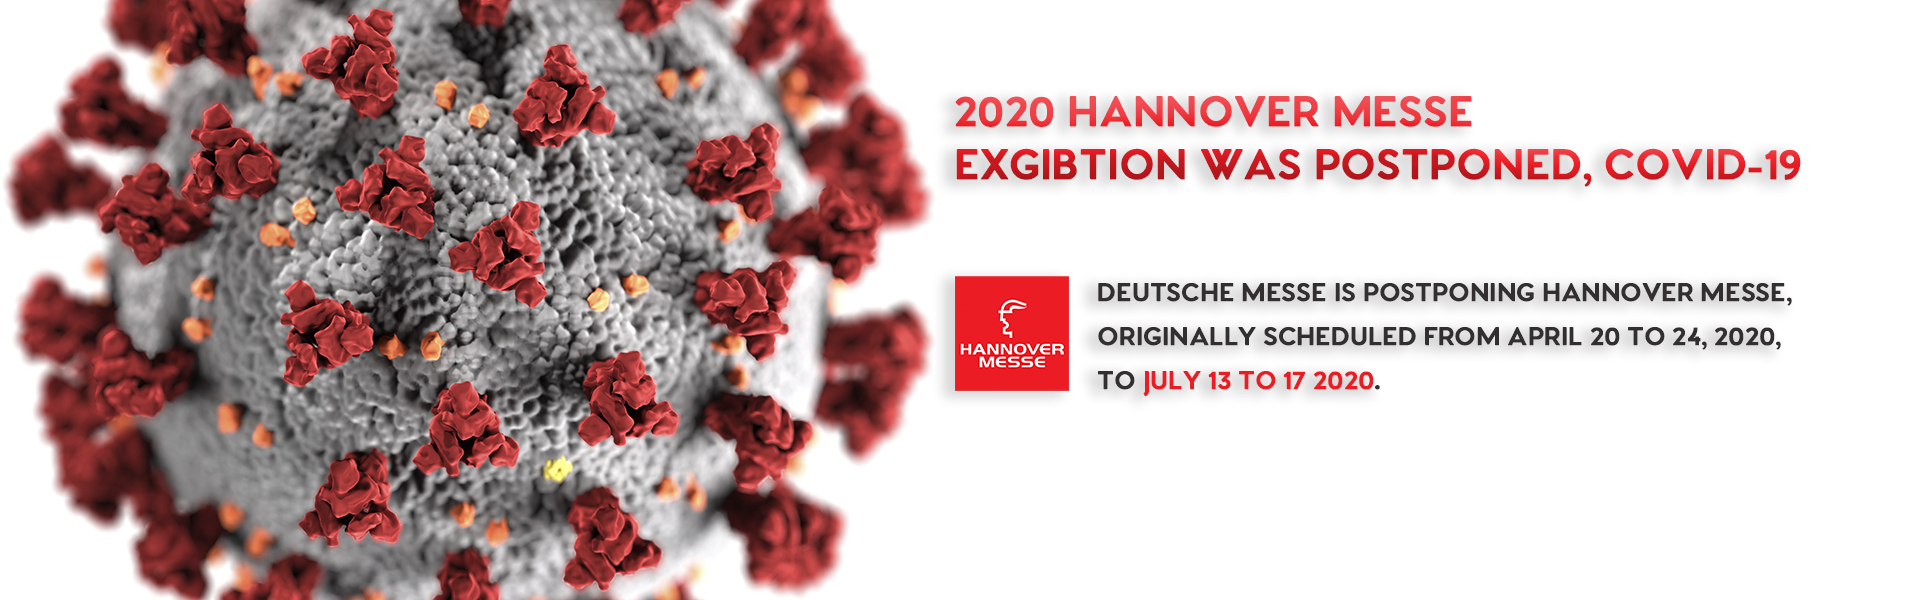 2020 HANNOVER MESSE POSTPONED NOTIFICATION